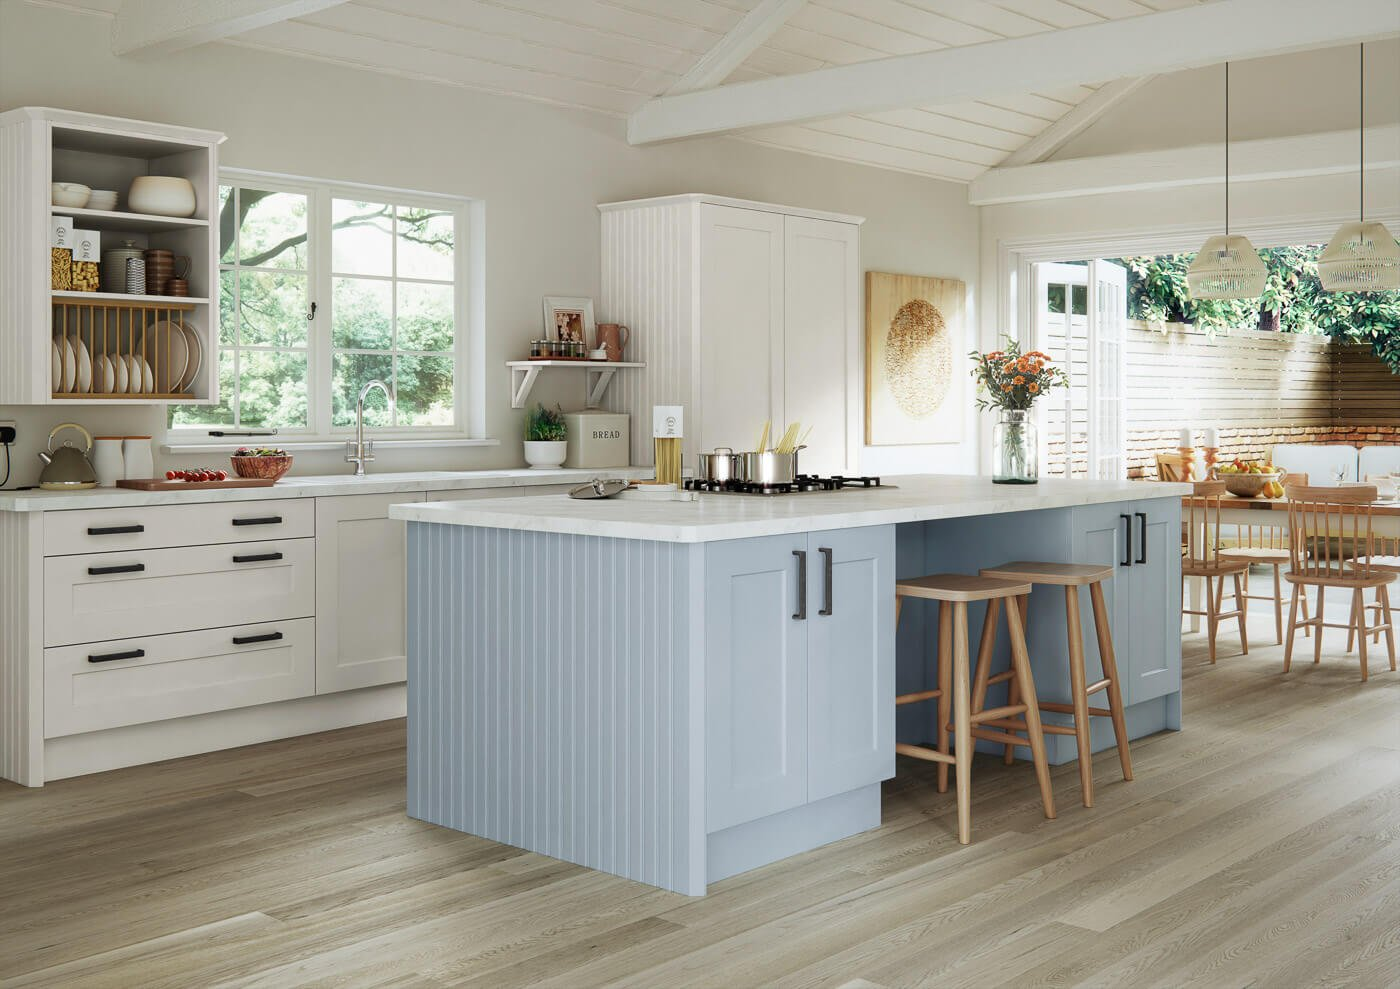 hartside bespoke traditional kitchen